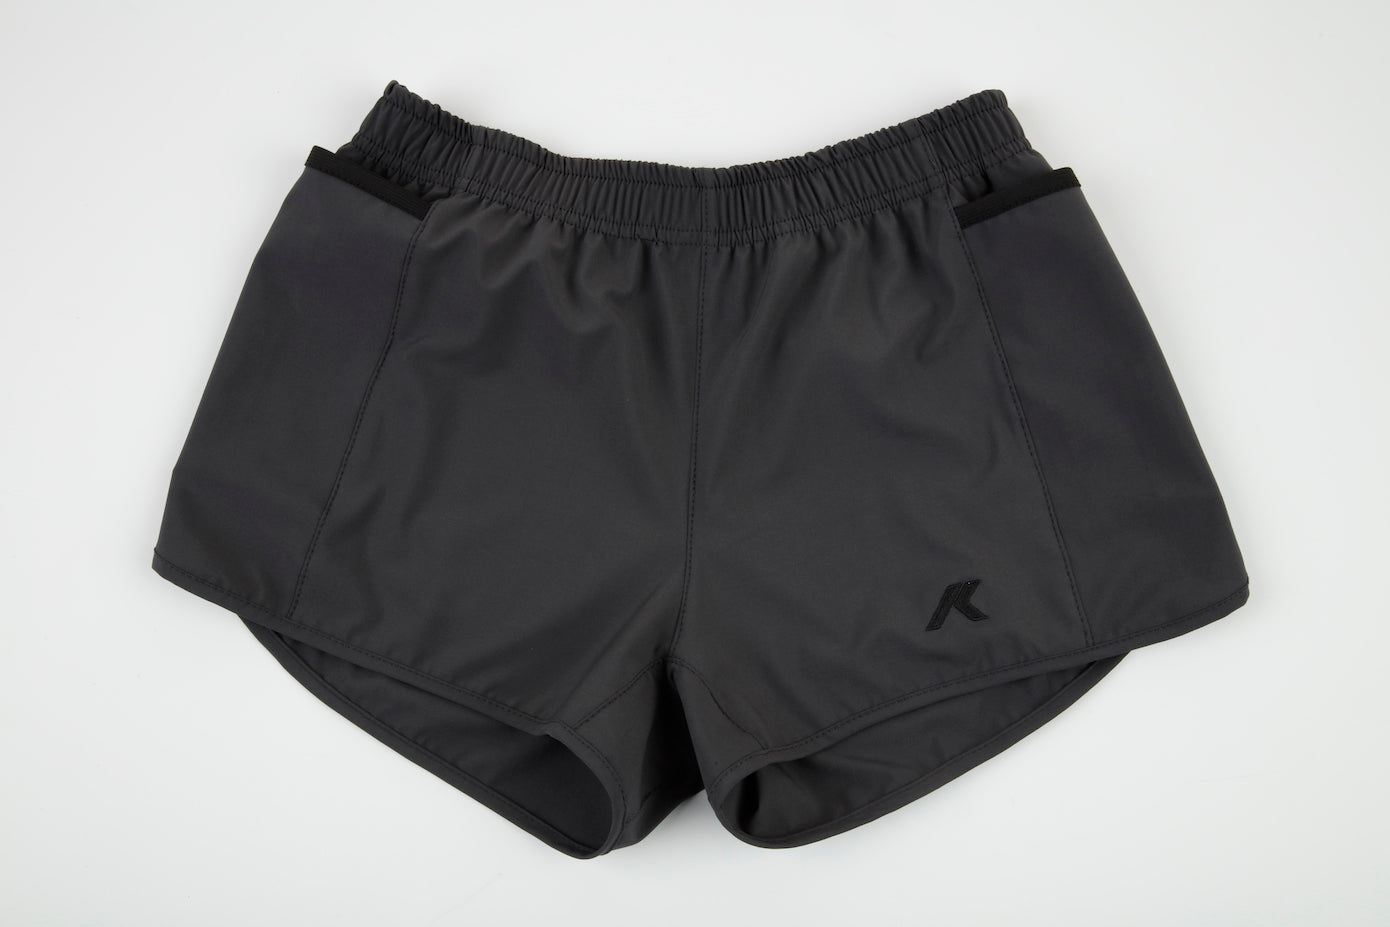 Women's Shorts with Smartphone Pockets (no liner)